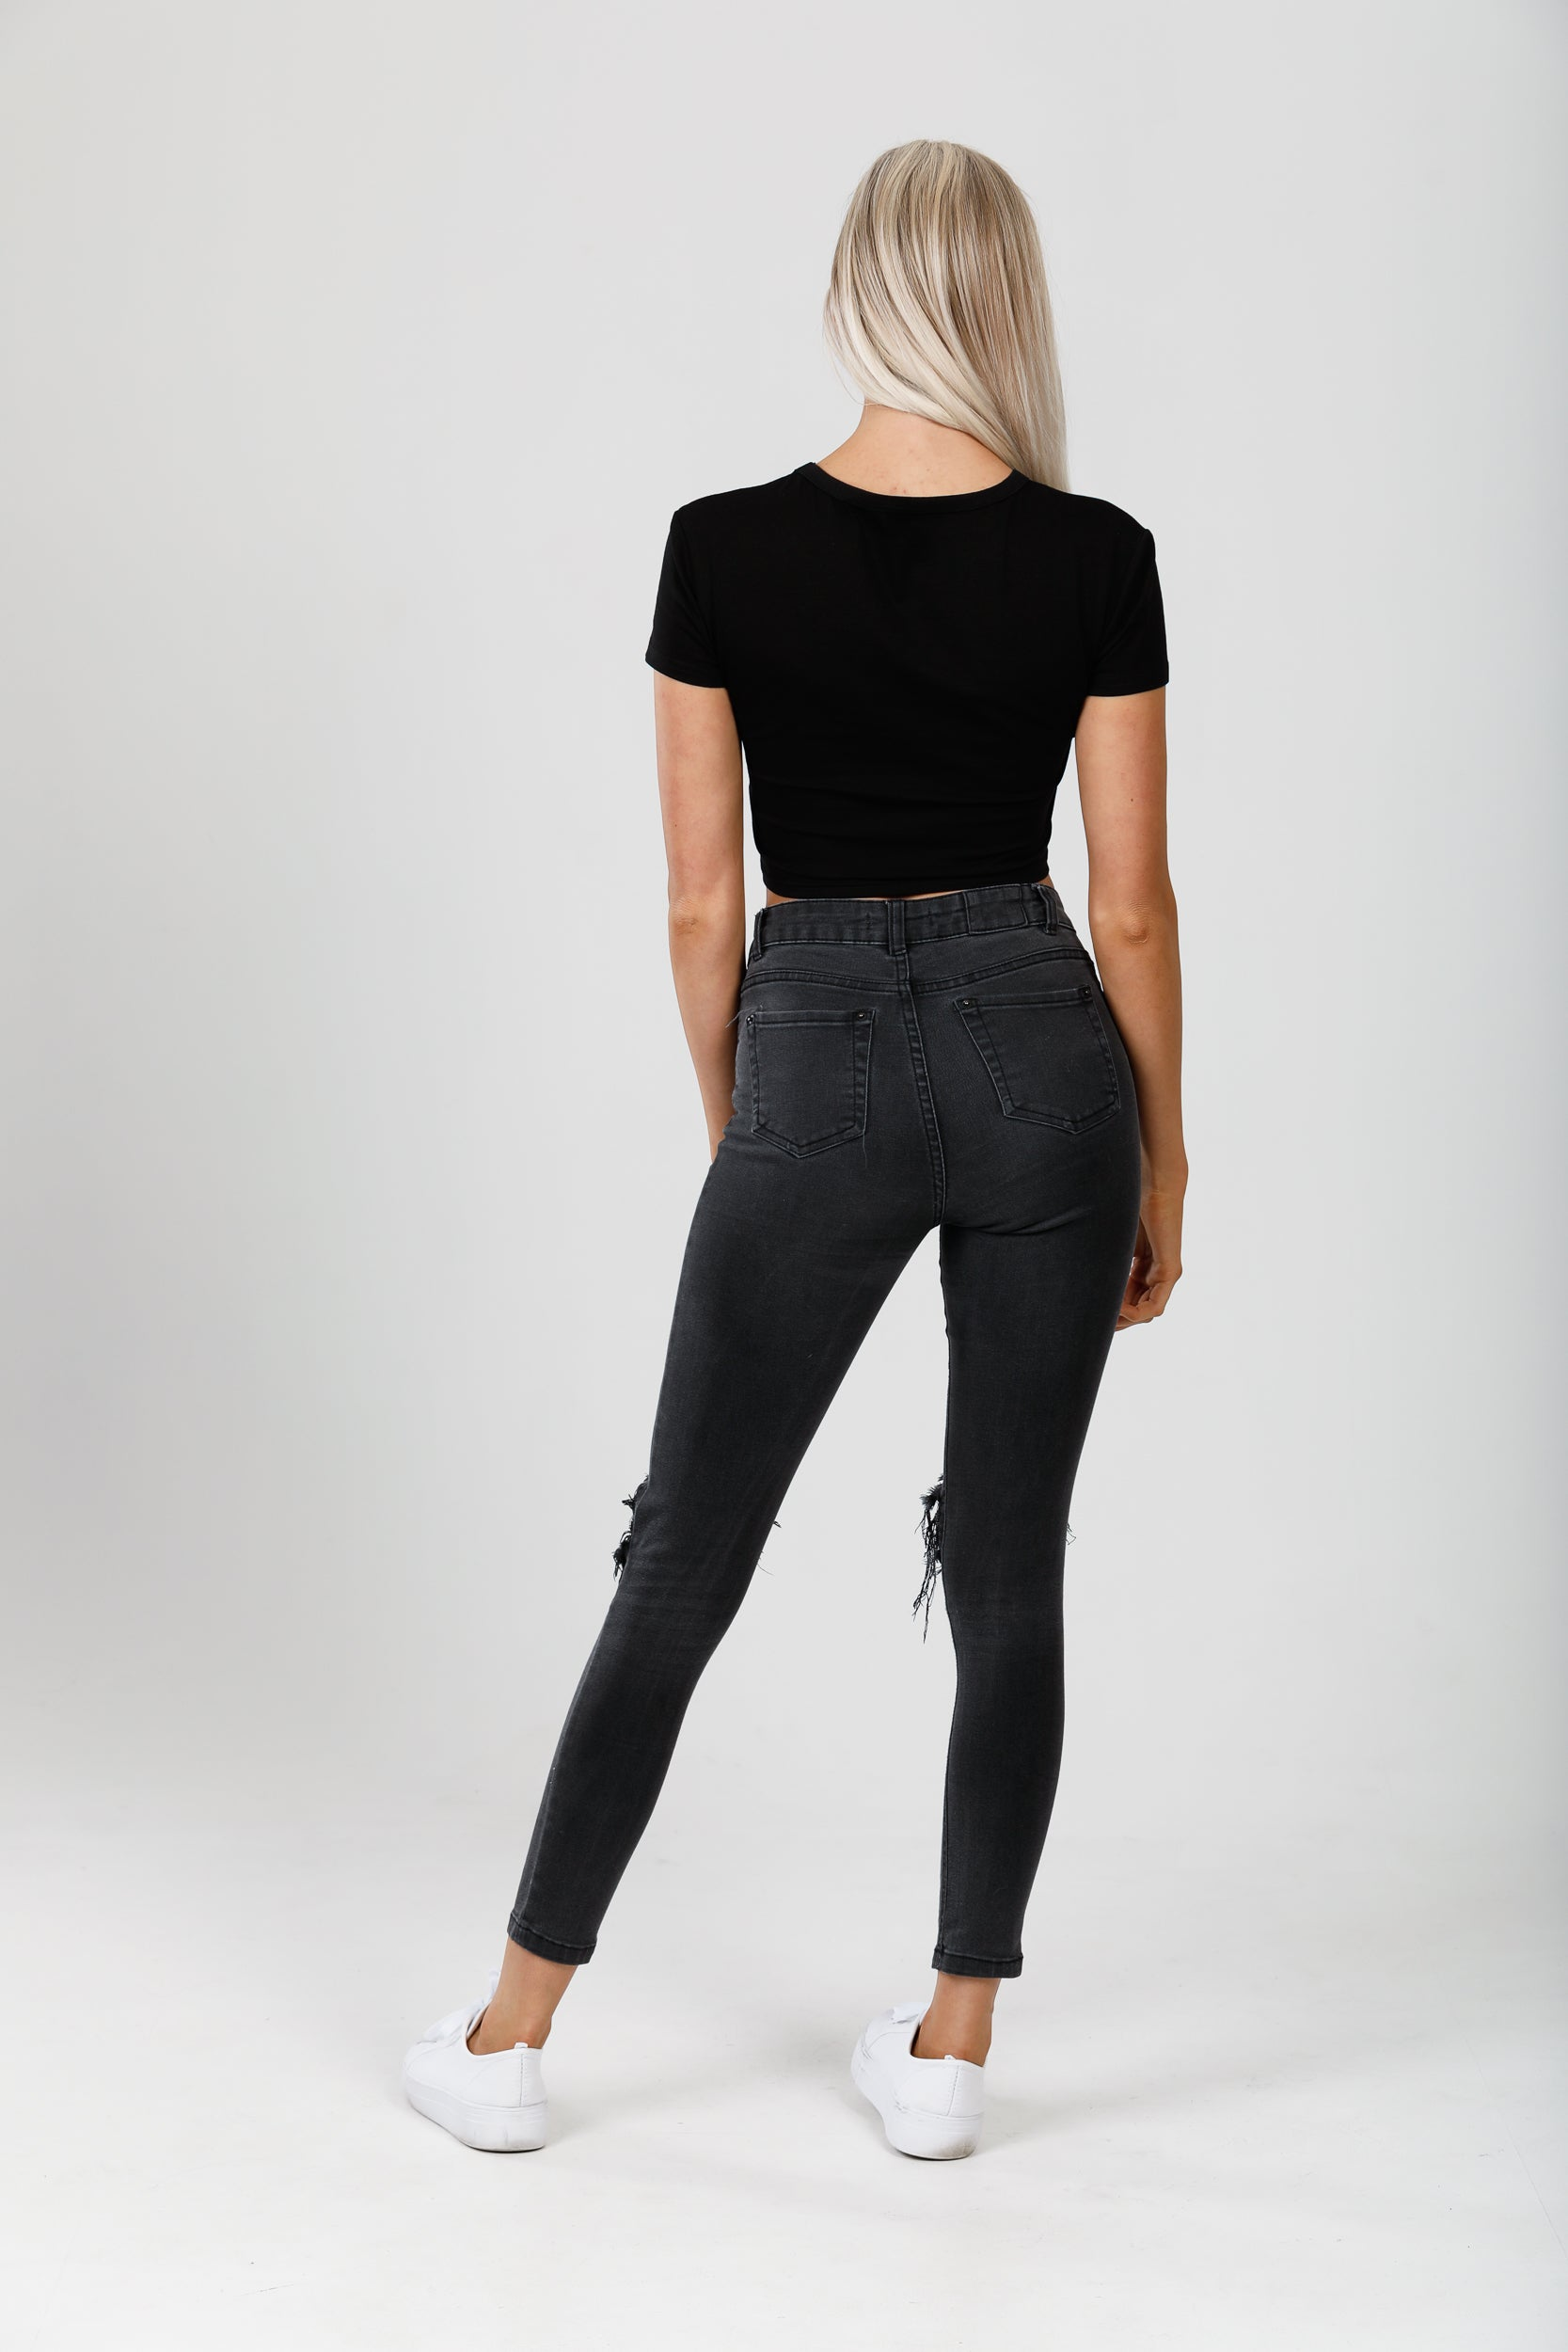 Midnight Black Crop Tee